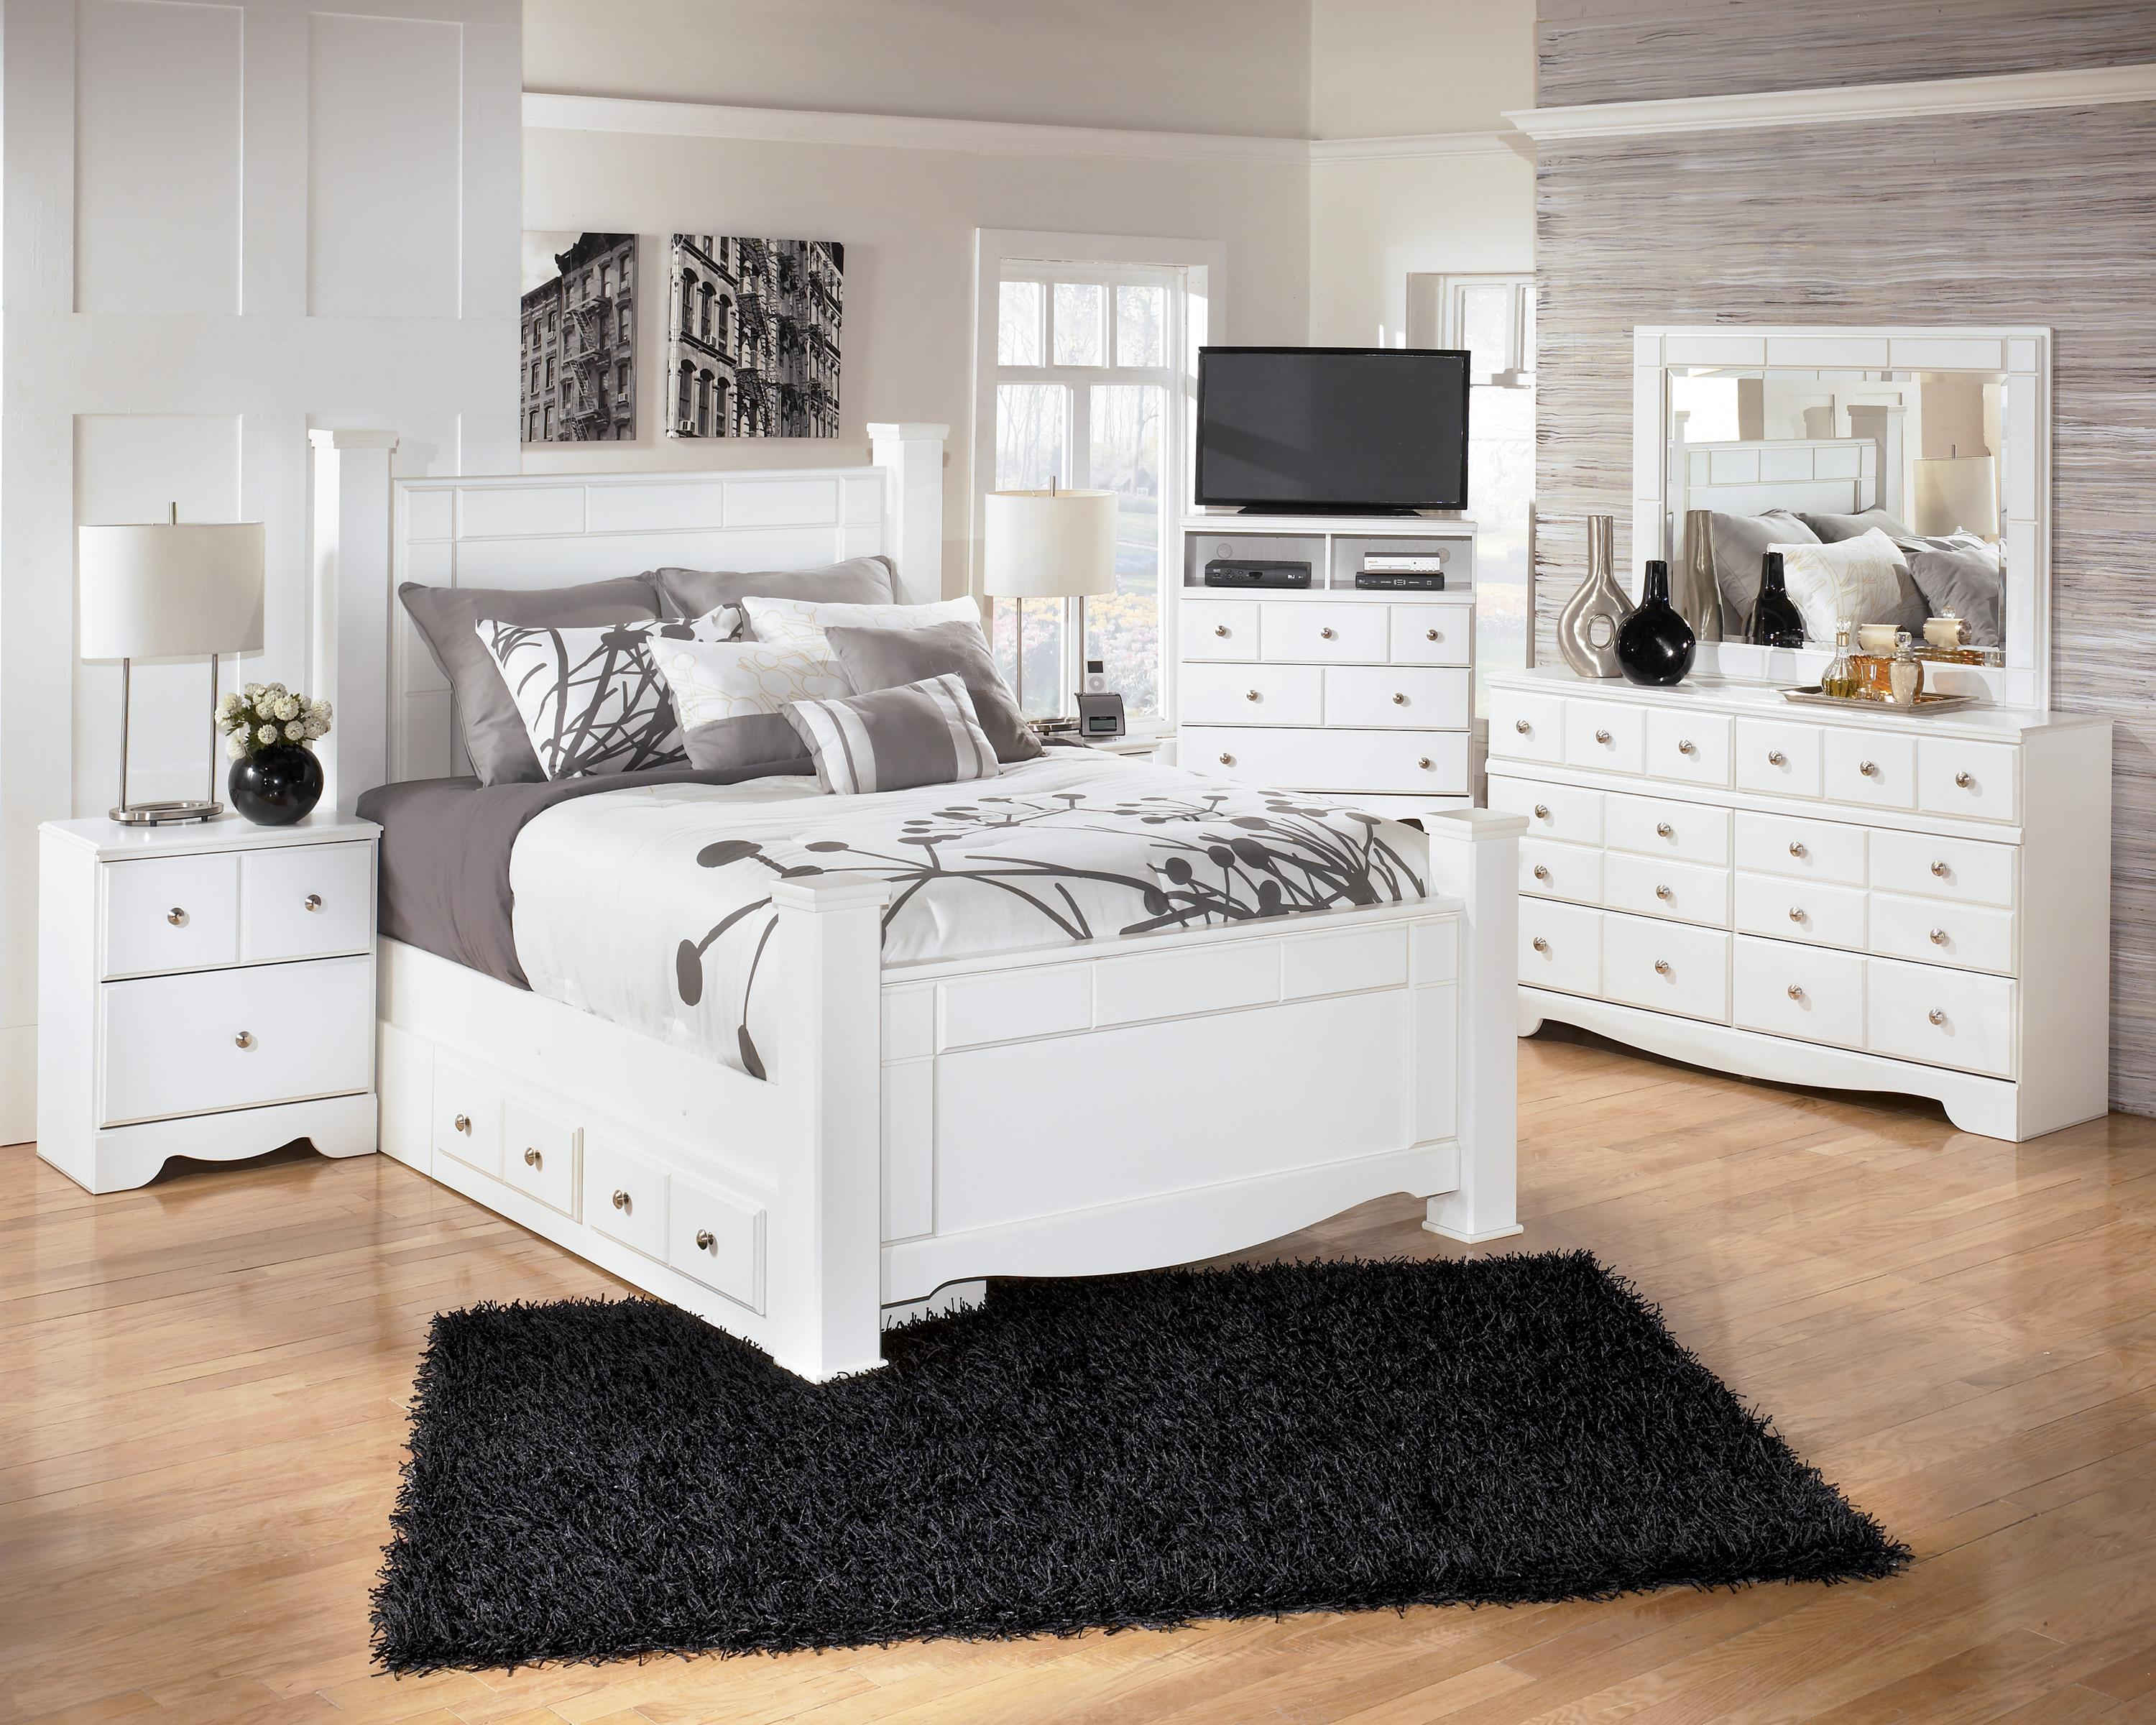 Signature design by ashley weeki queen poster bed with underbed storage del sol furniture Queen bedroom sets with underbed storage